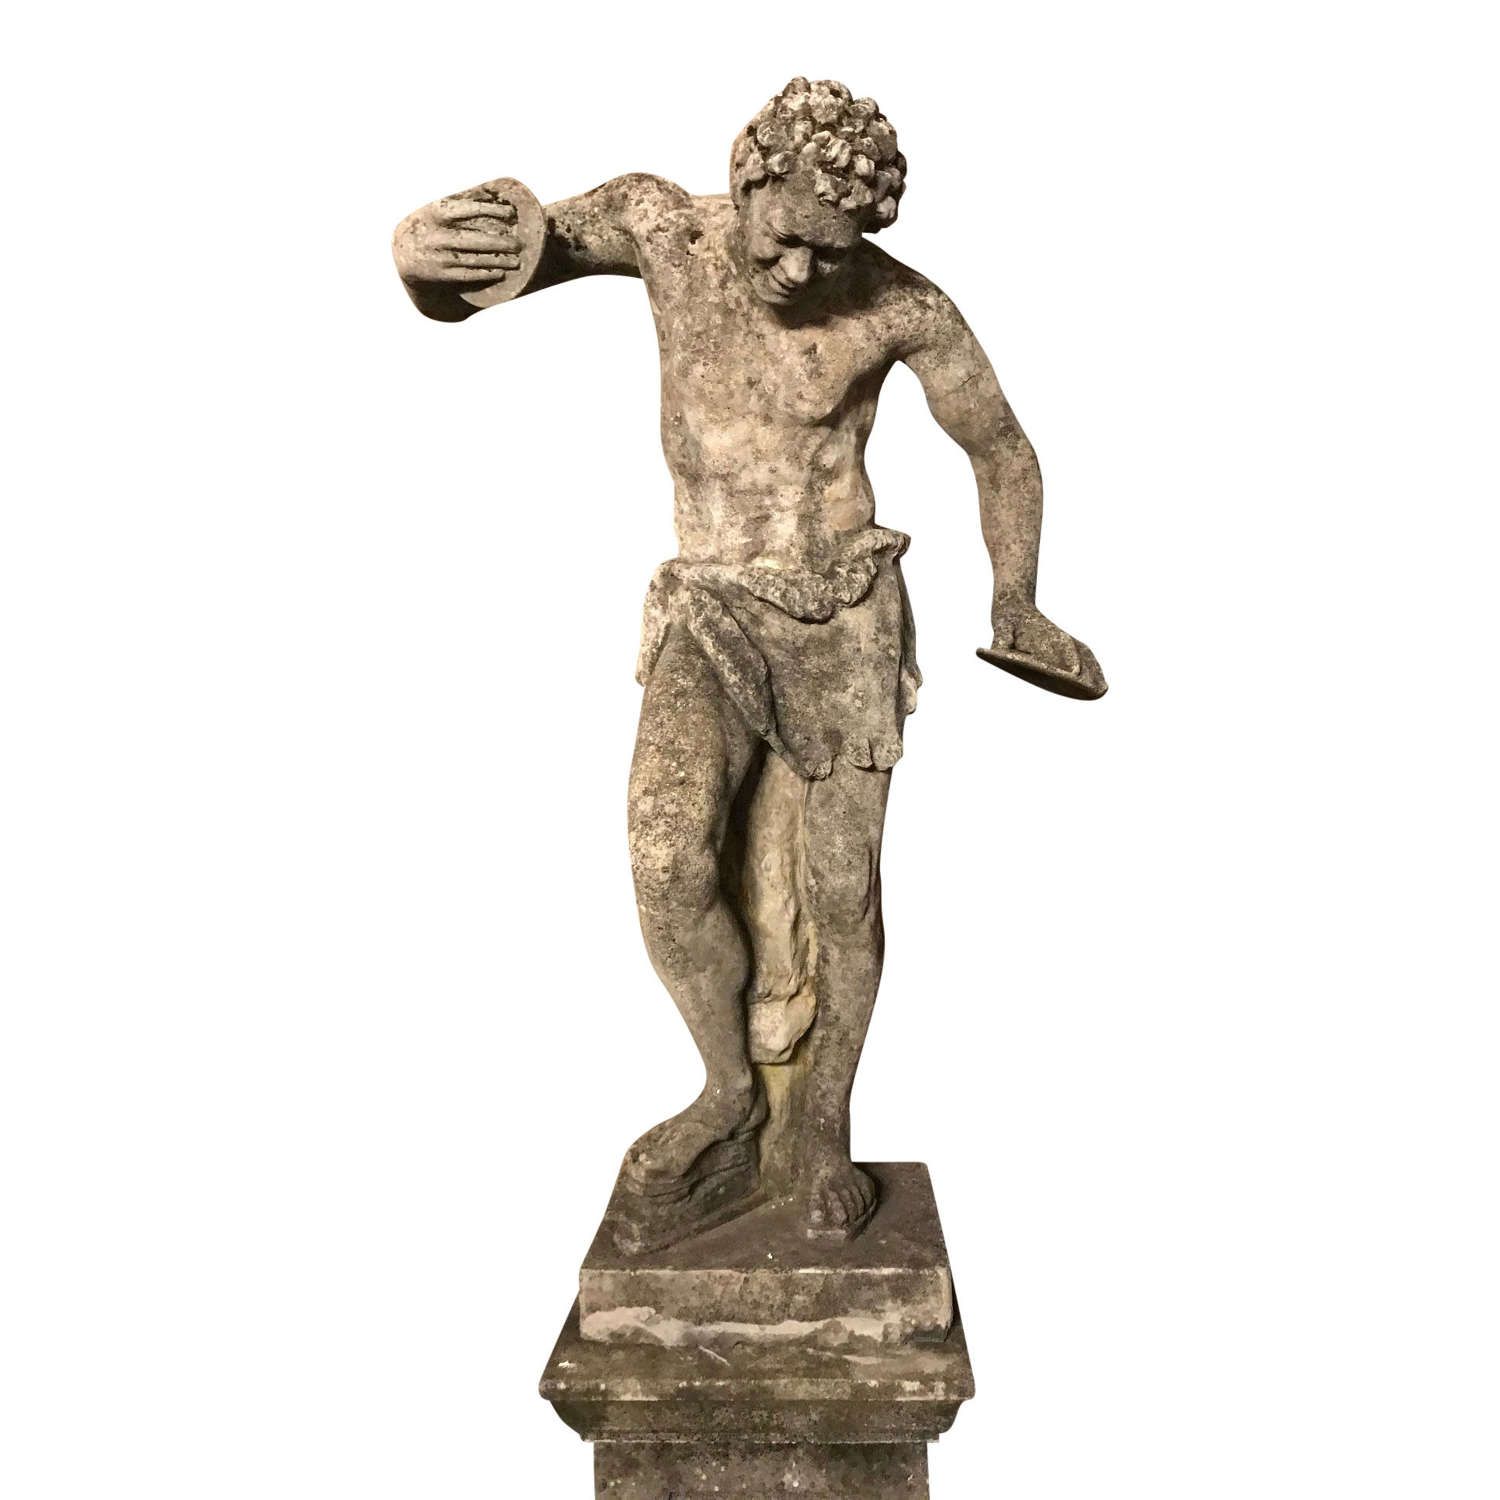 AFTER THE ANTIQUE, A LARGE COMPOSITION STONE FIGURE OF THE DANCING FAU